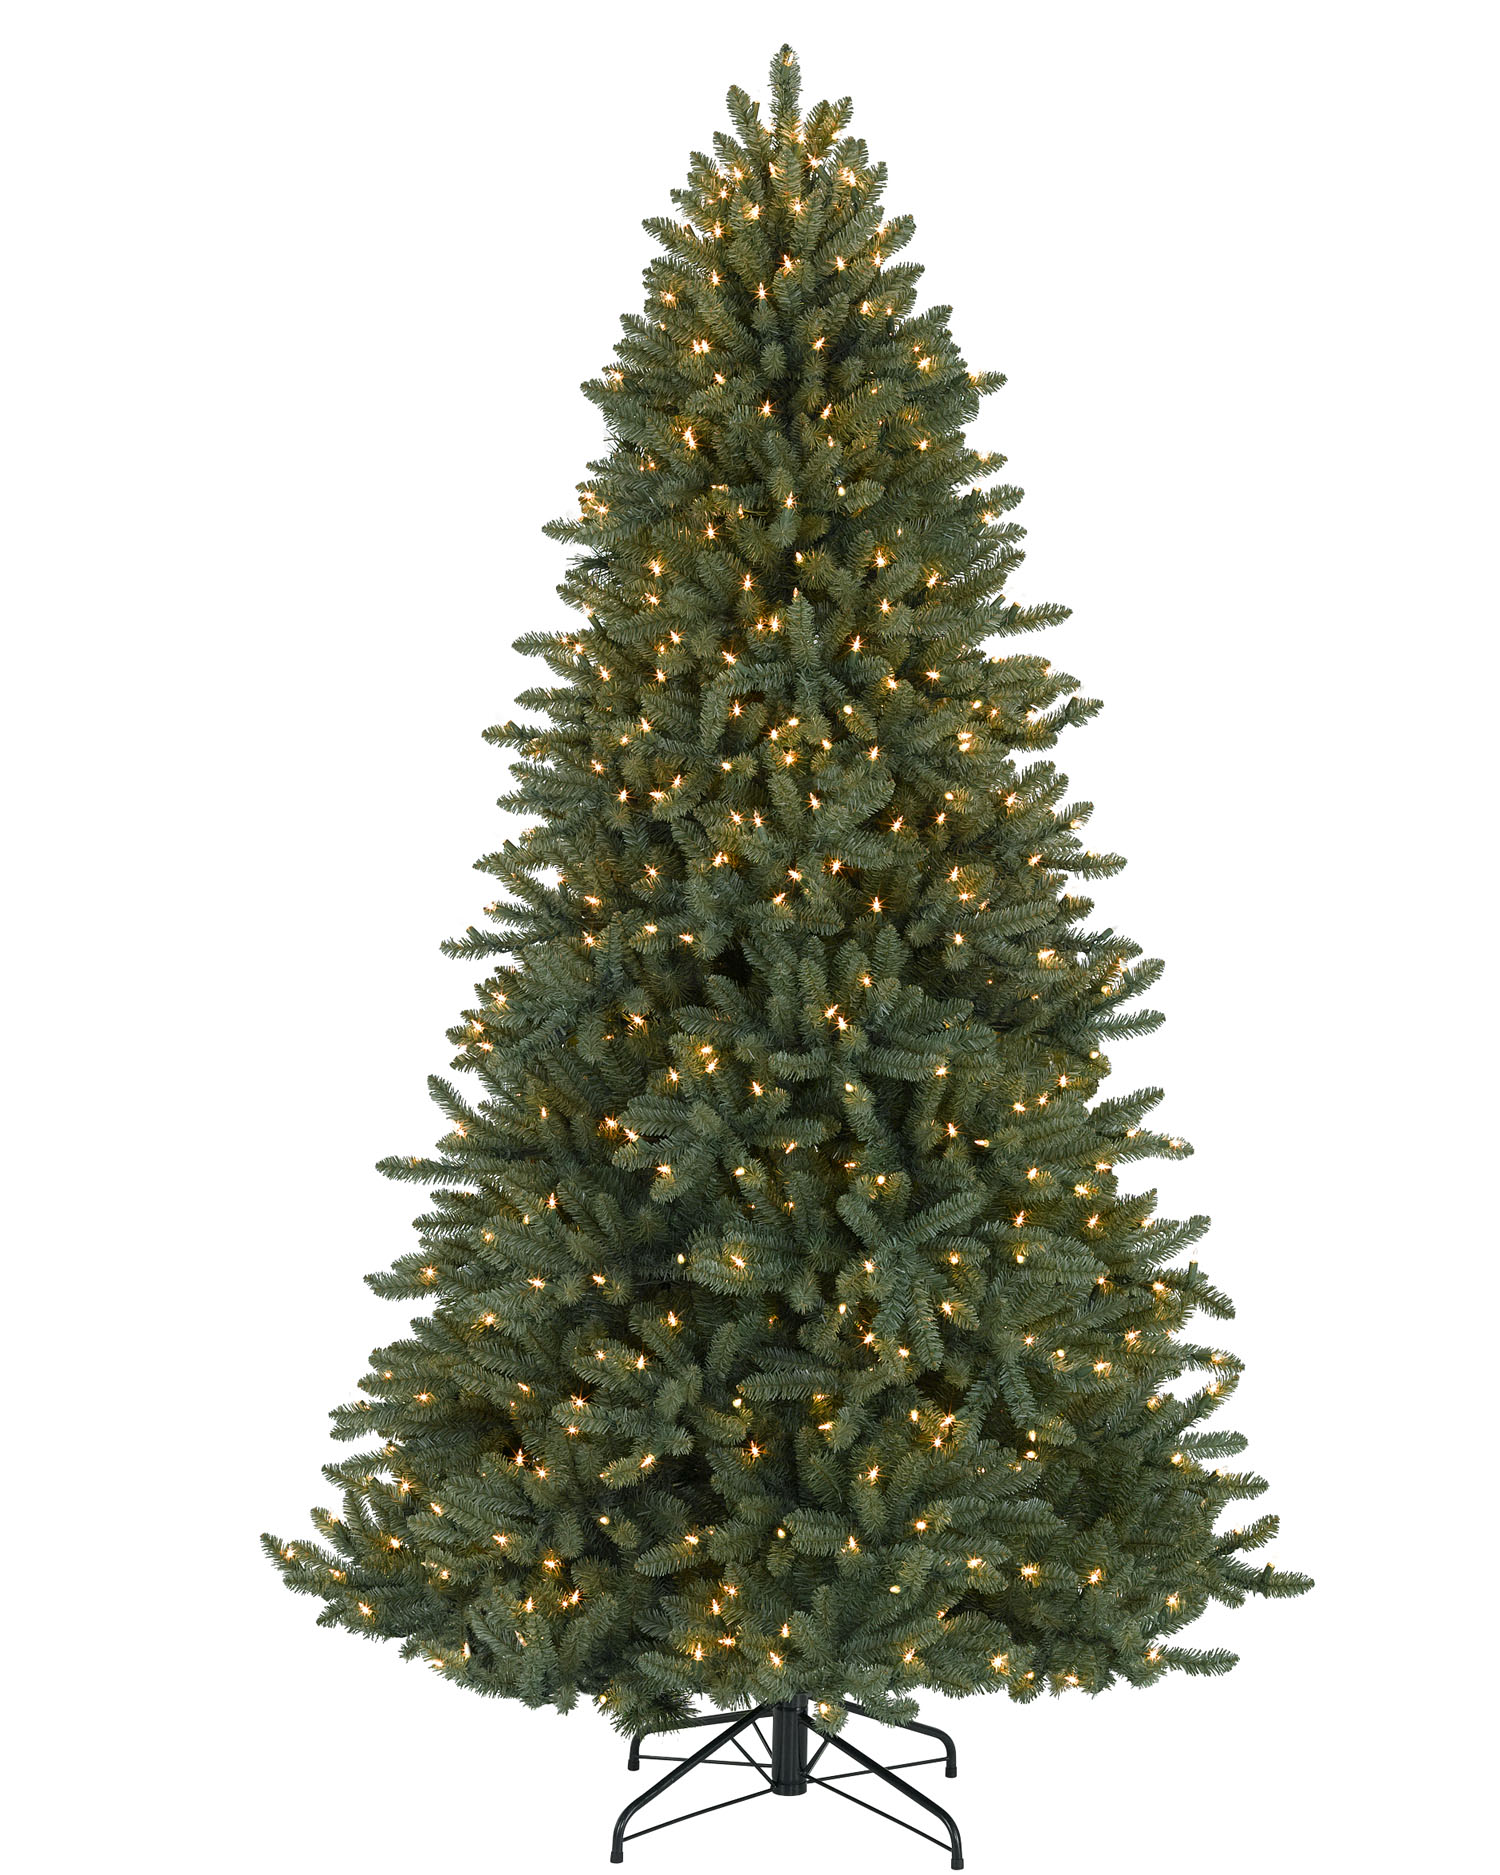 7 foot colorado blue spruce artificial christmas tree - Christmas Tree With Lights